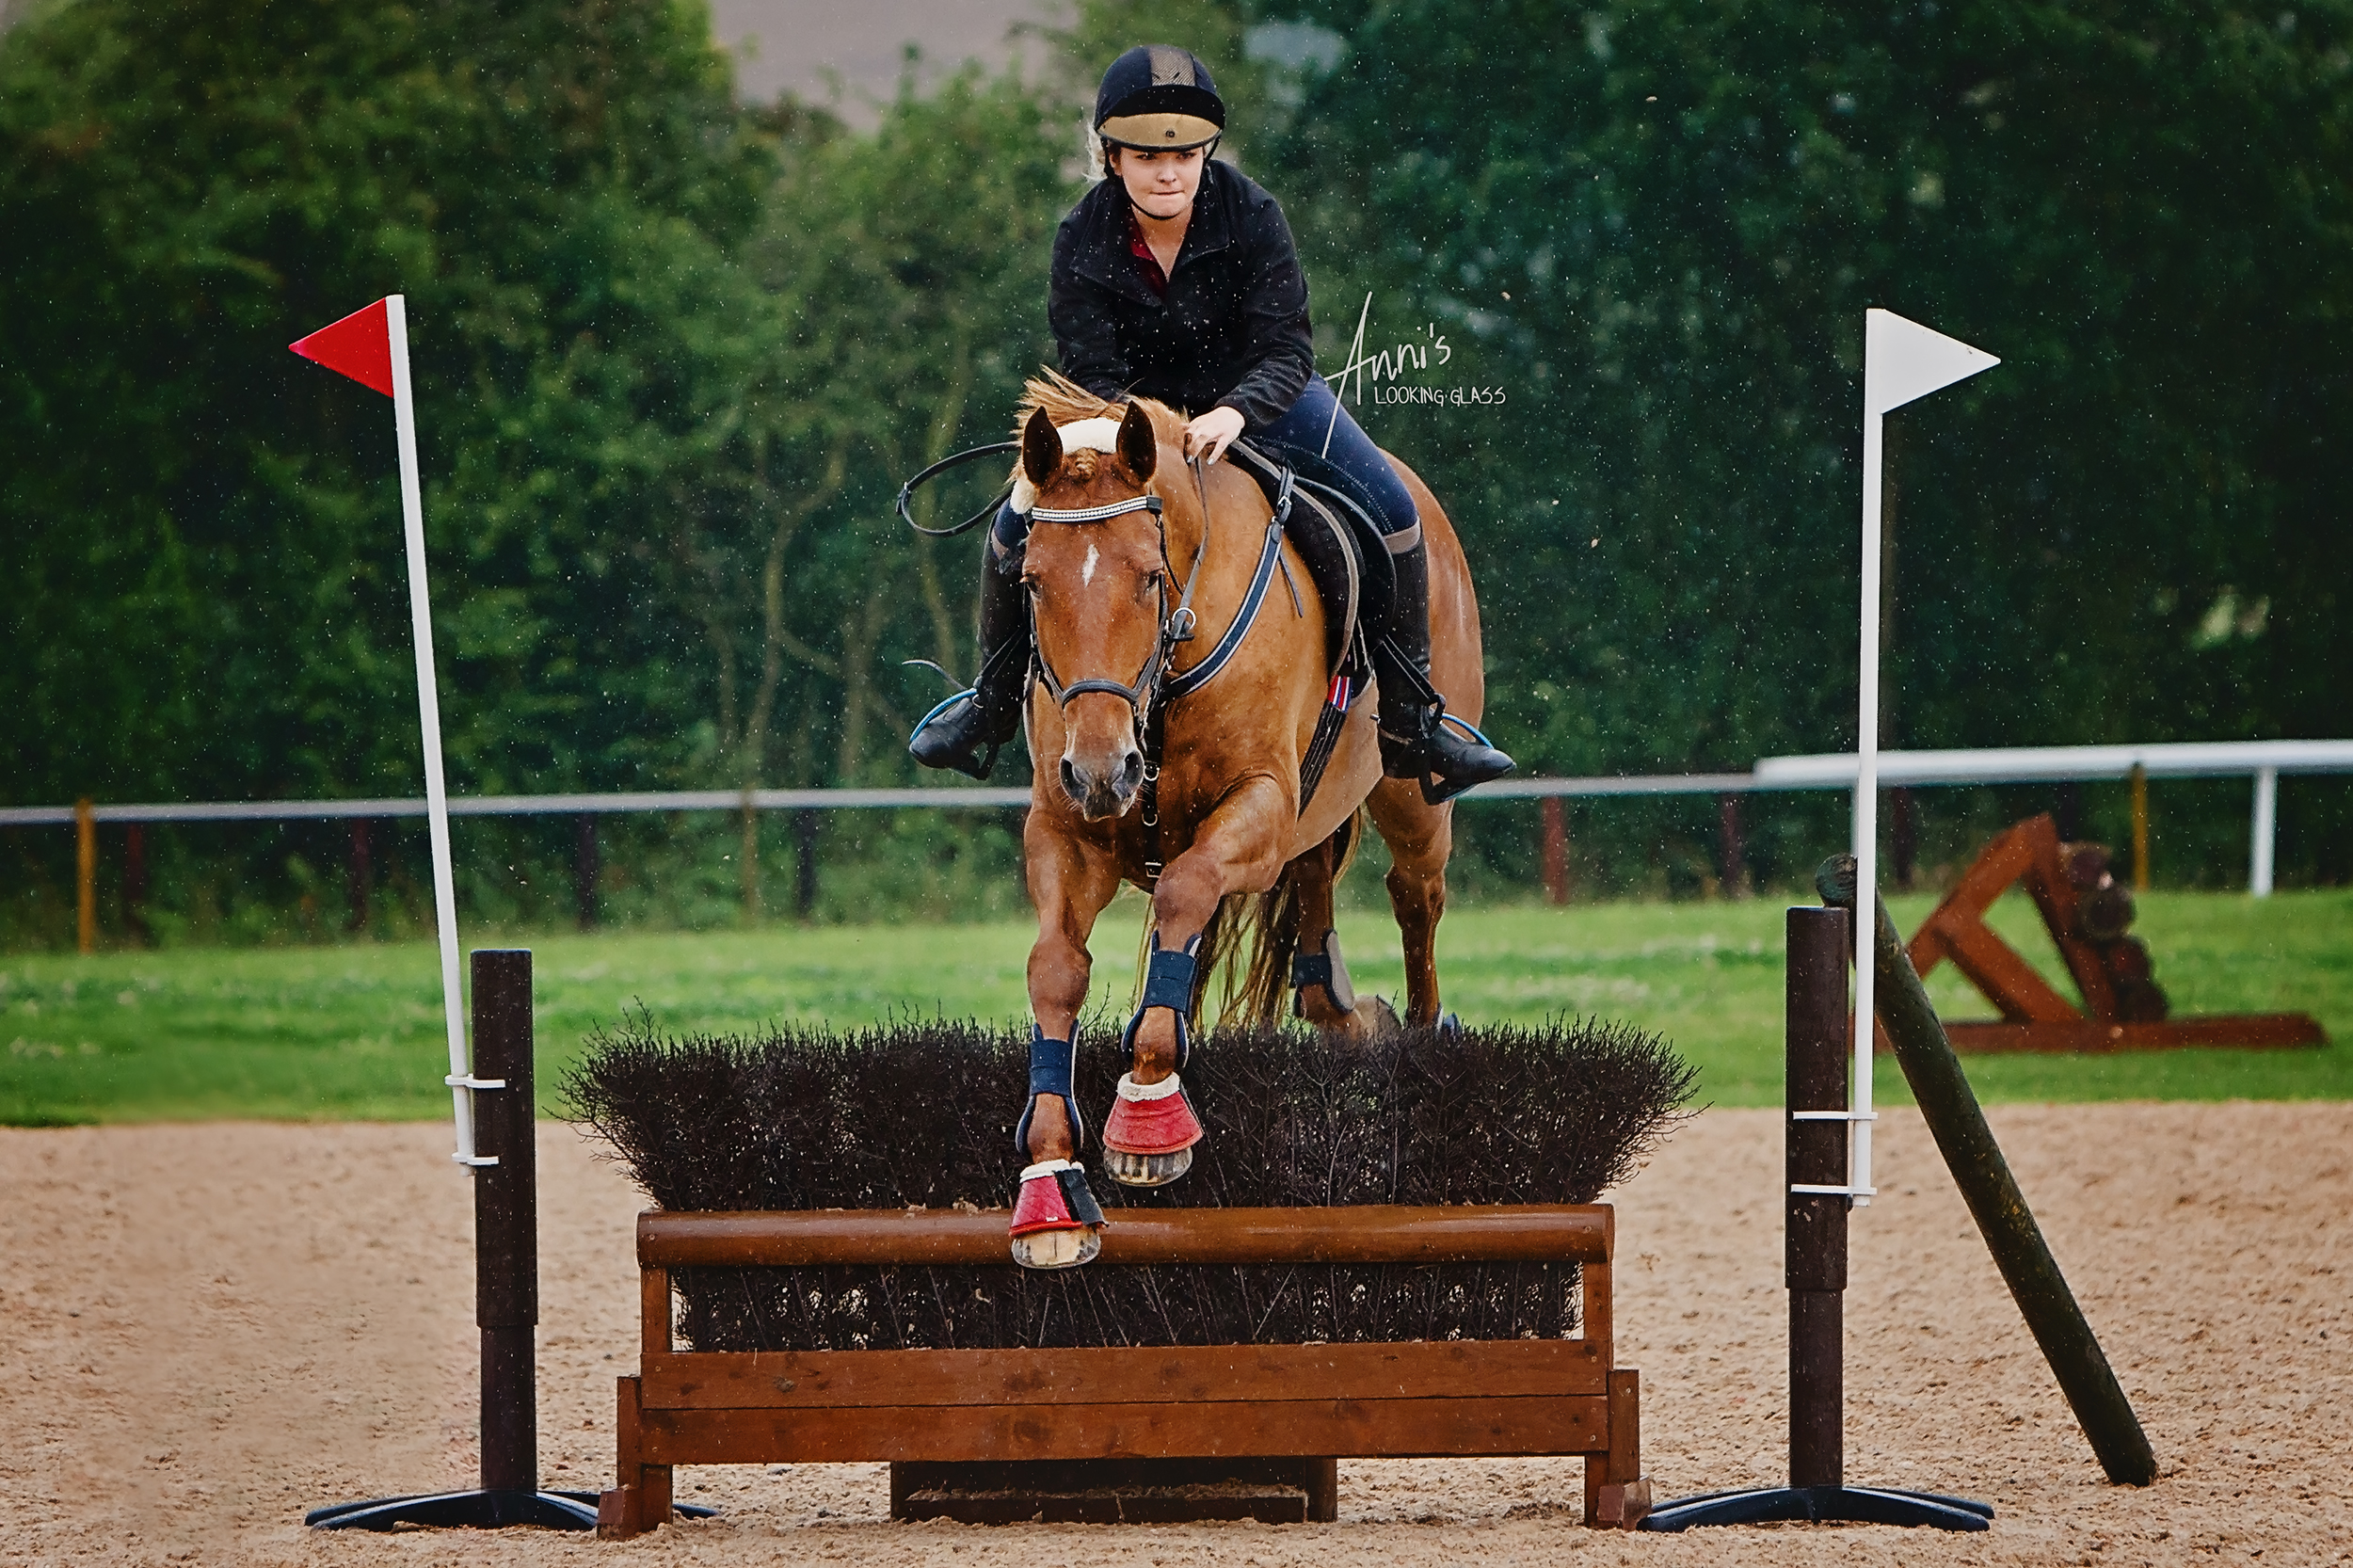 eventing-equine-horse-photographer-leicestershire.jpg